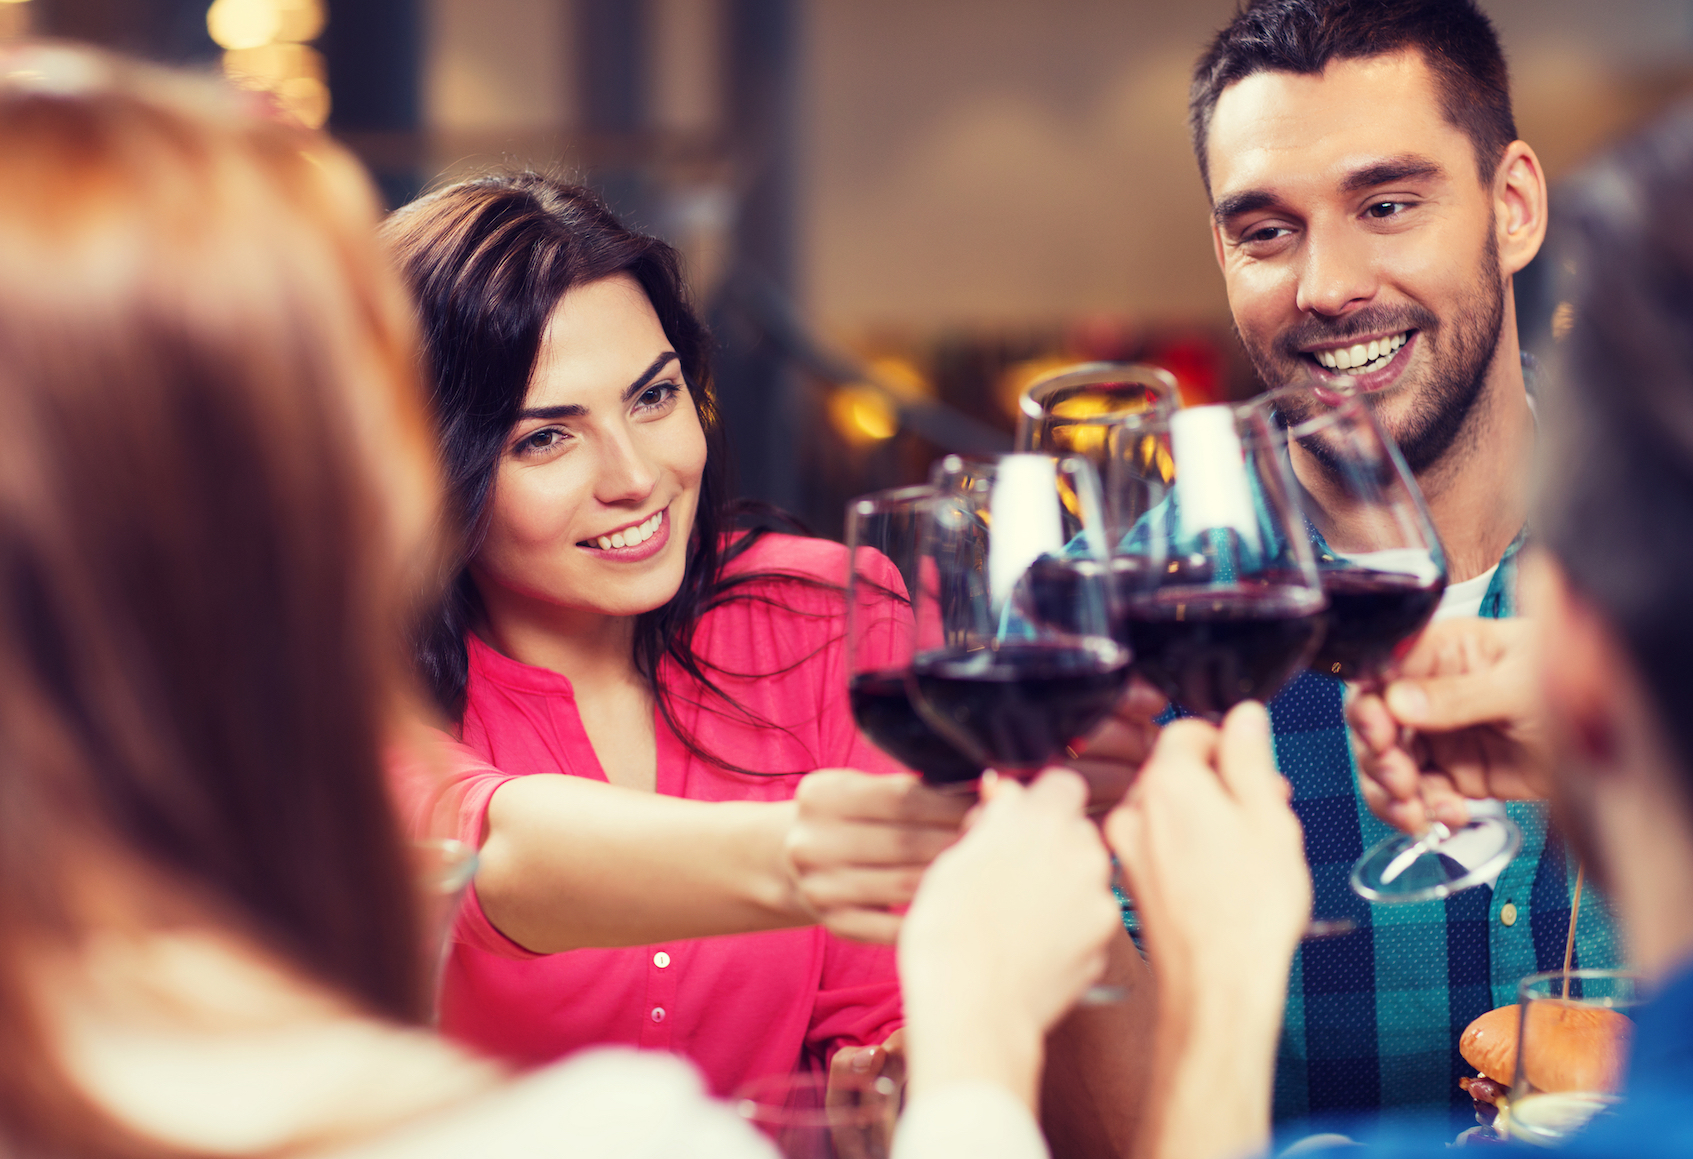 A new study found that unstable drinking patterns such as quitting drinking or drinking on and off increase the risk of heart disease.